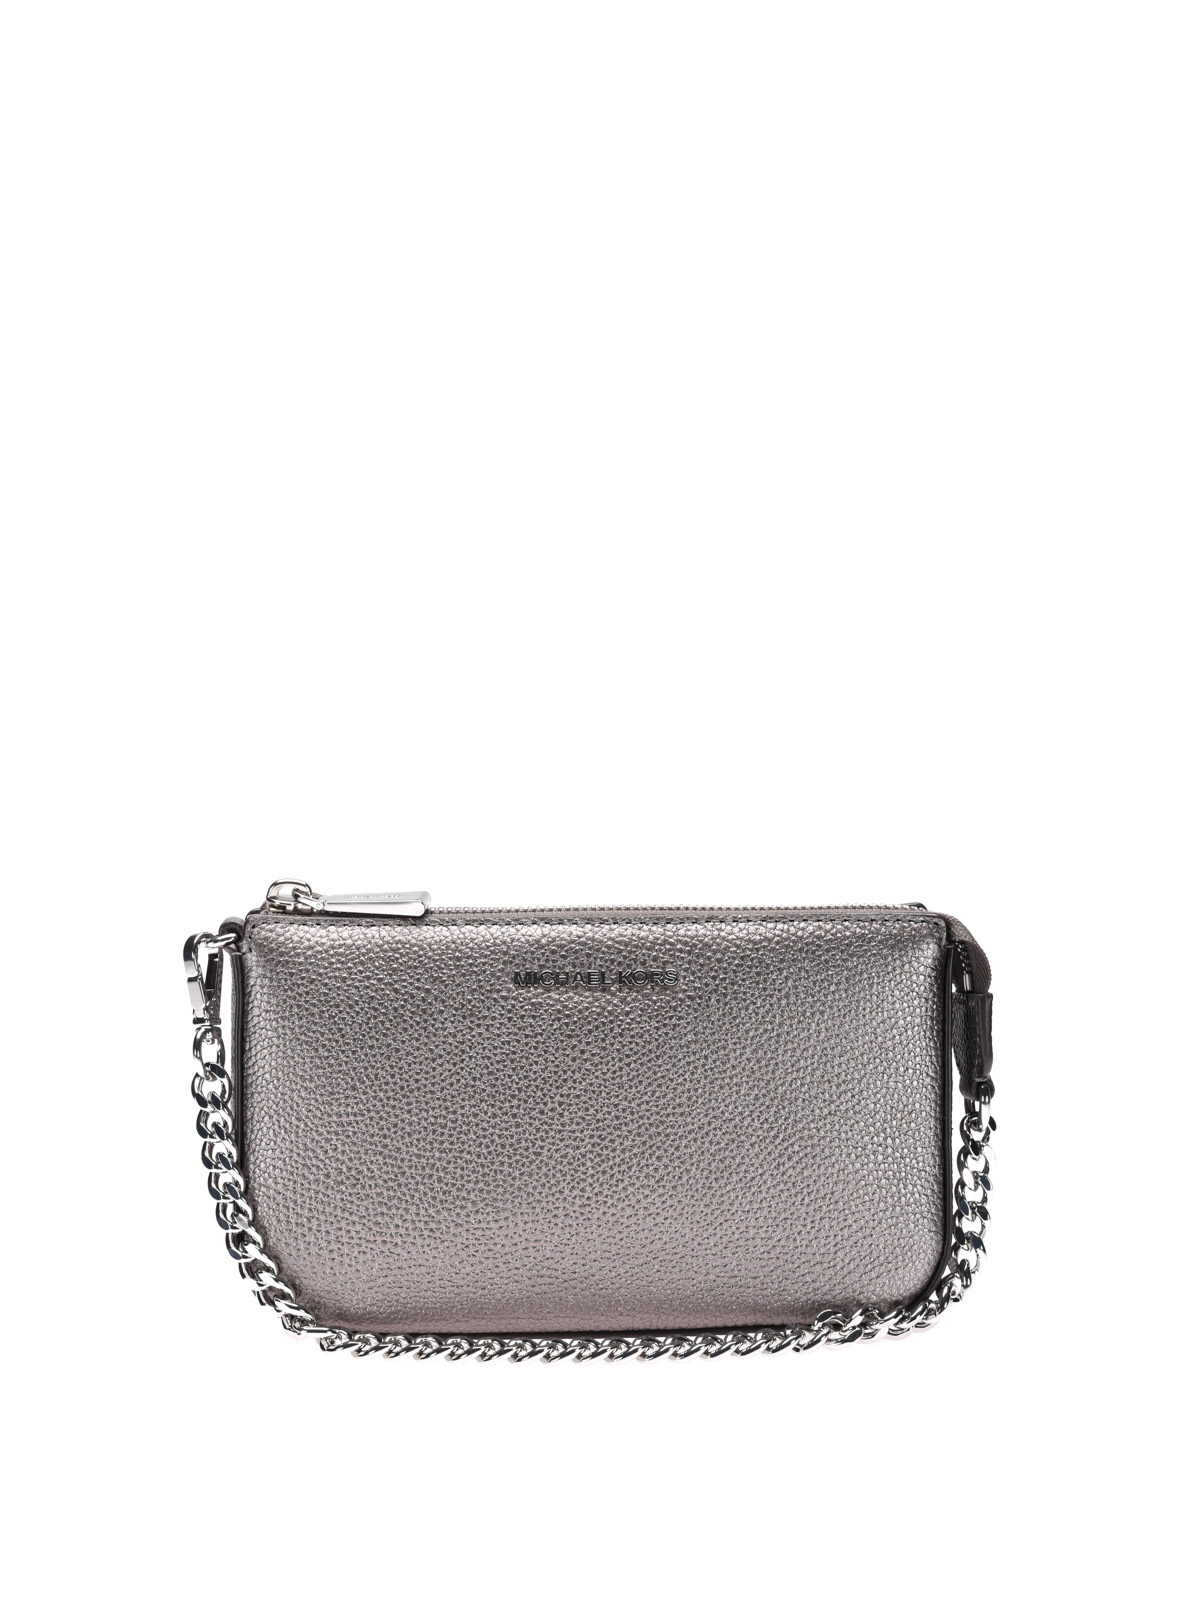 jet set gunmetal wristlet purse by michael kors wallets purses ikrix. Black Bedroom Furniture Sets. Home Design Ideas